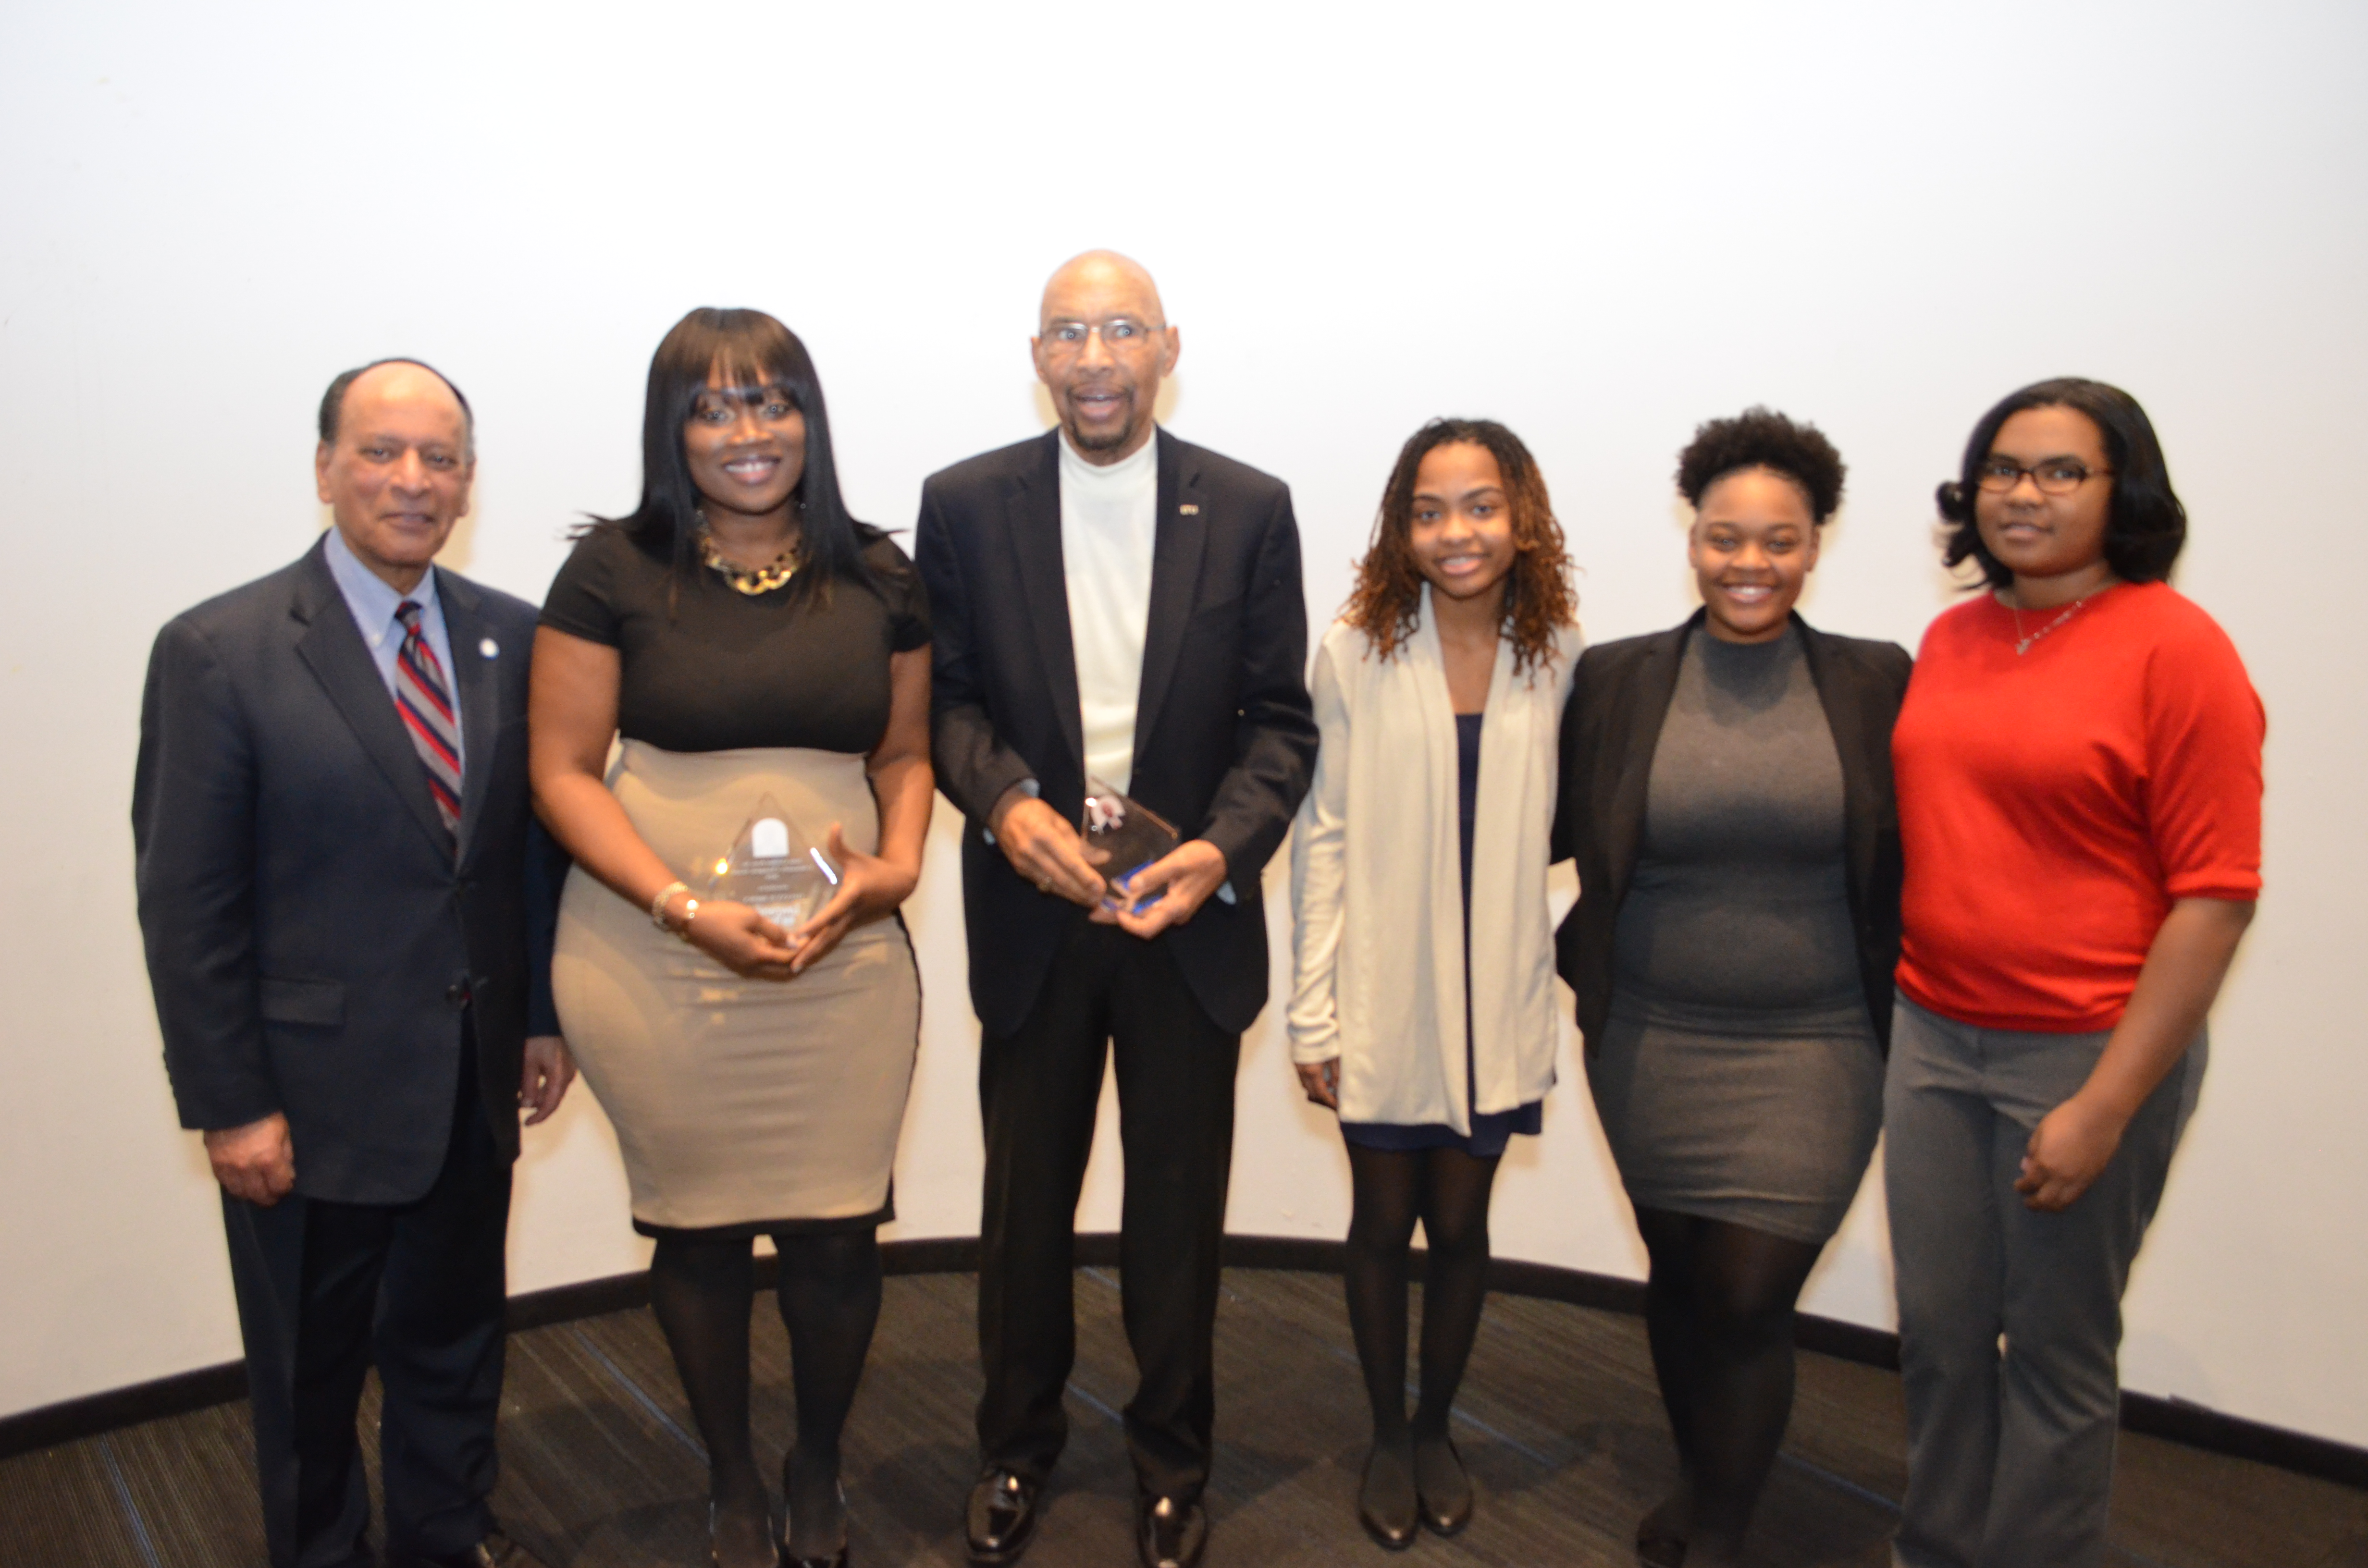 Inaugural John G. Petty Community Champion Award